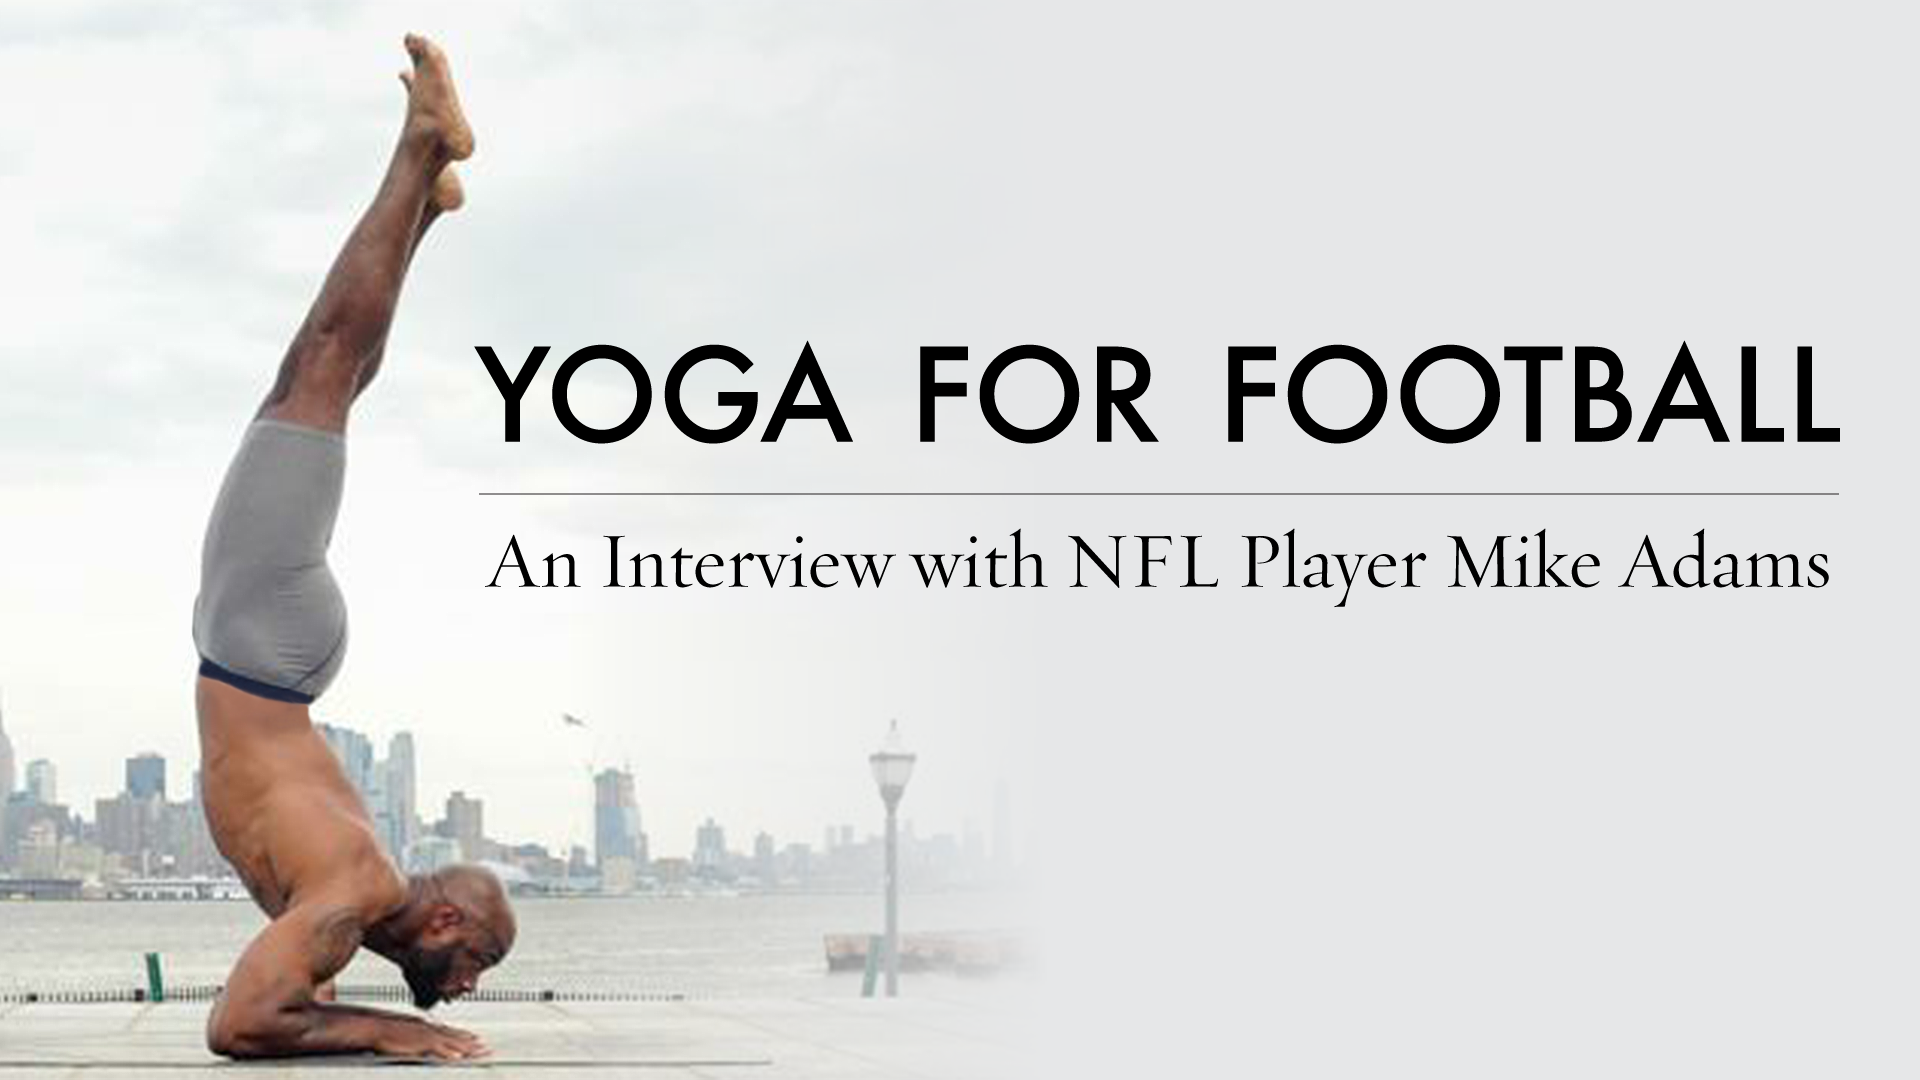 Yoga for Football: An Interview with NFL Player Mike Adams